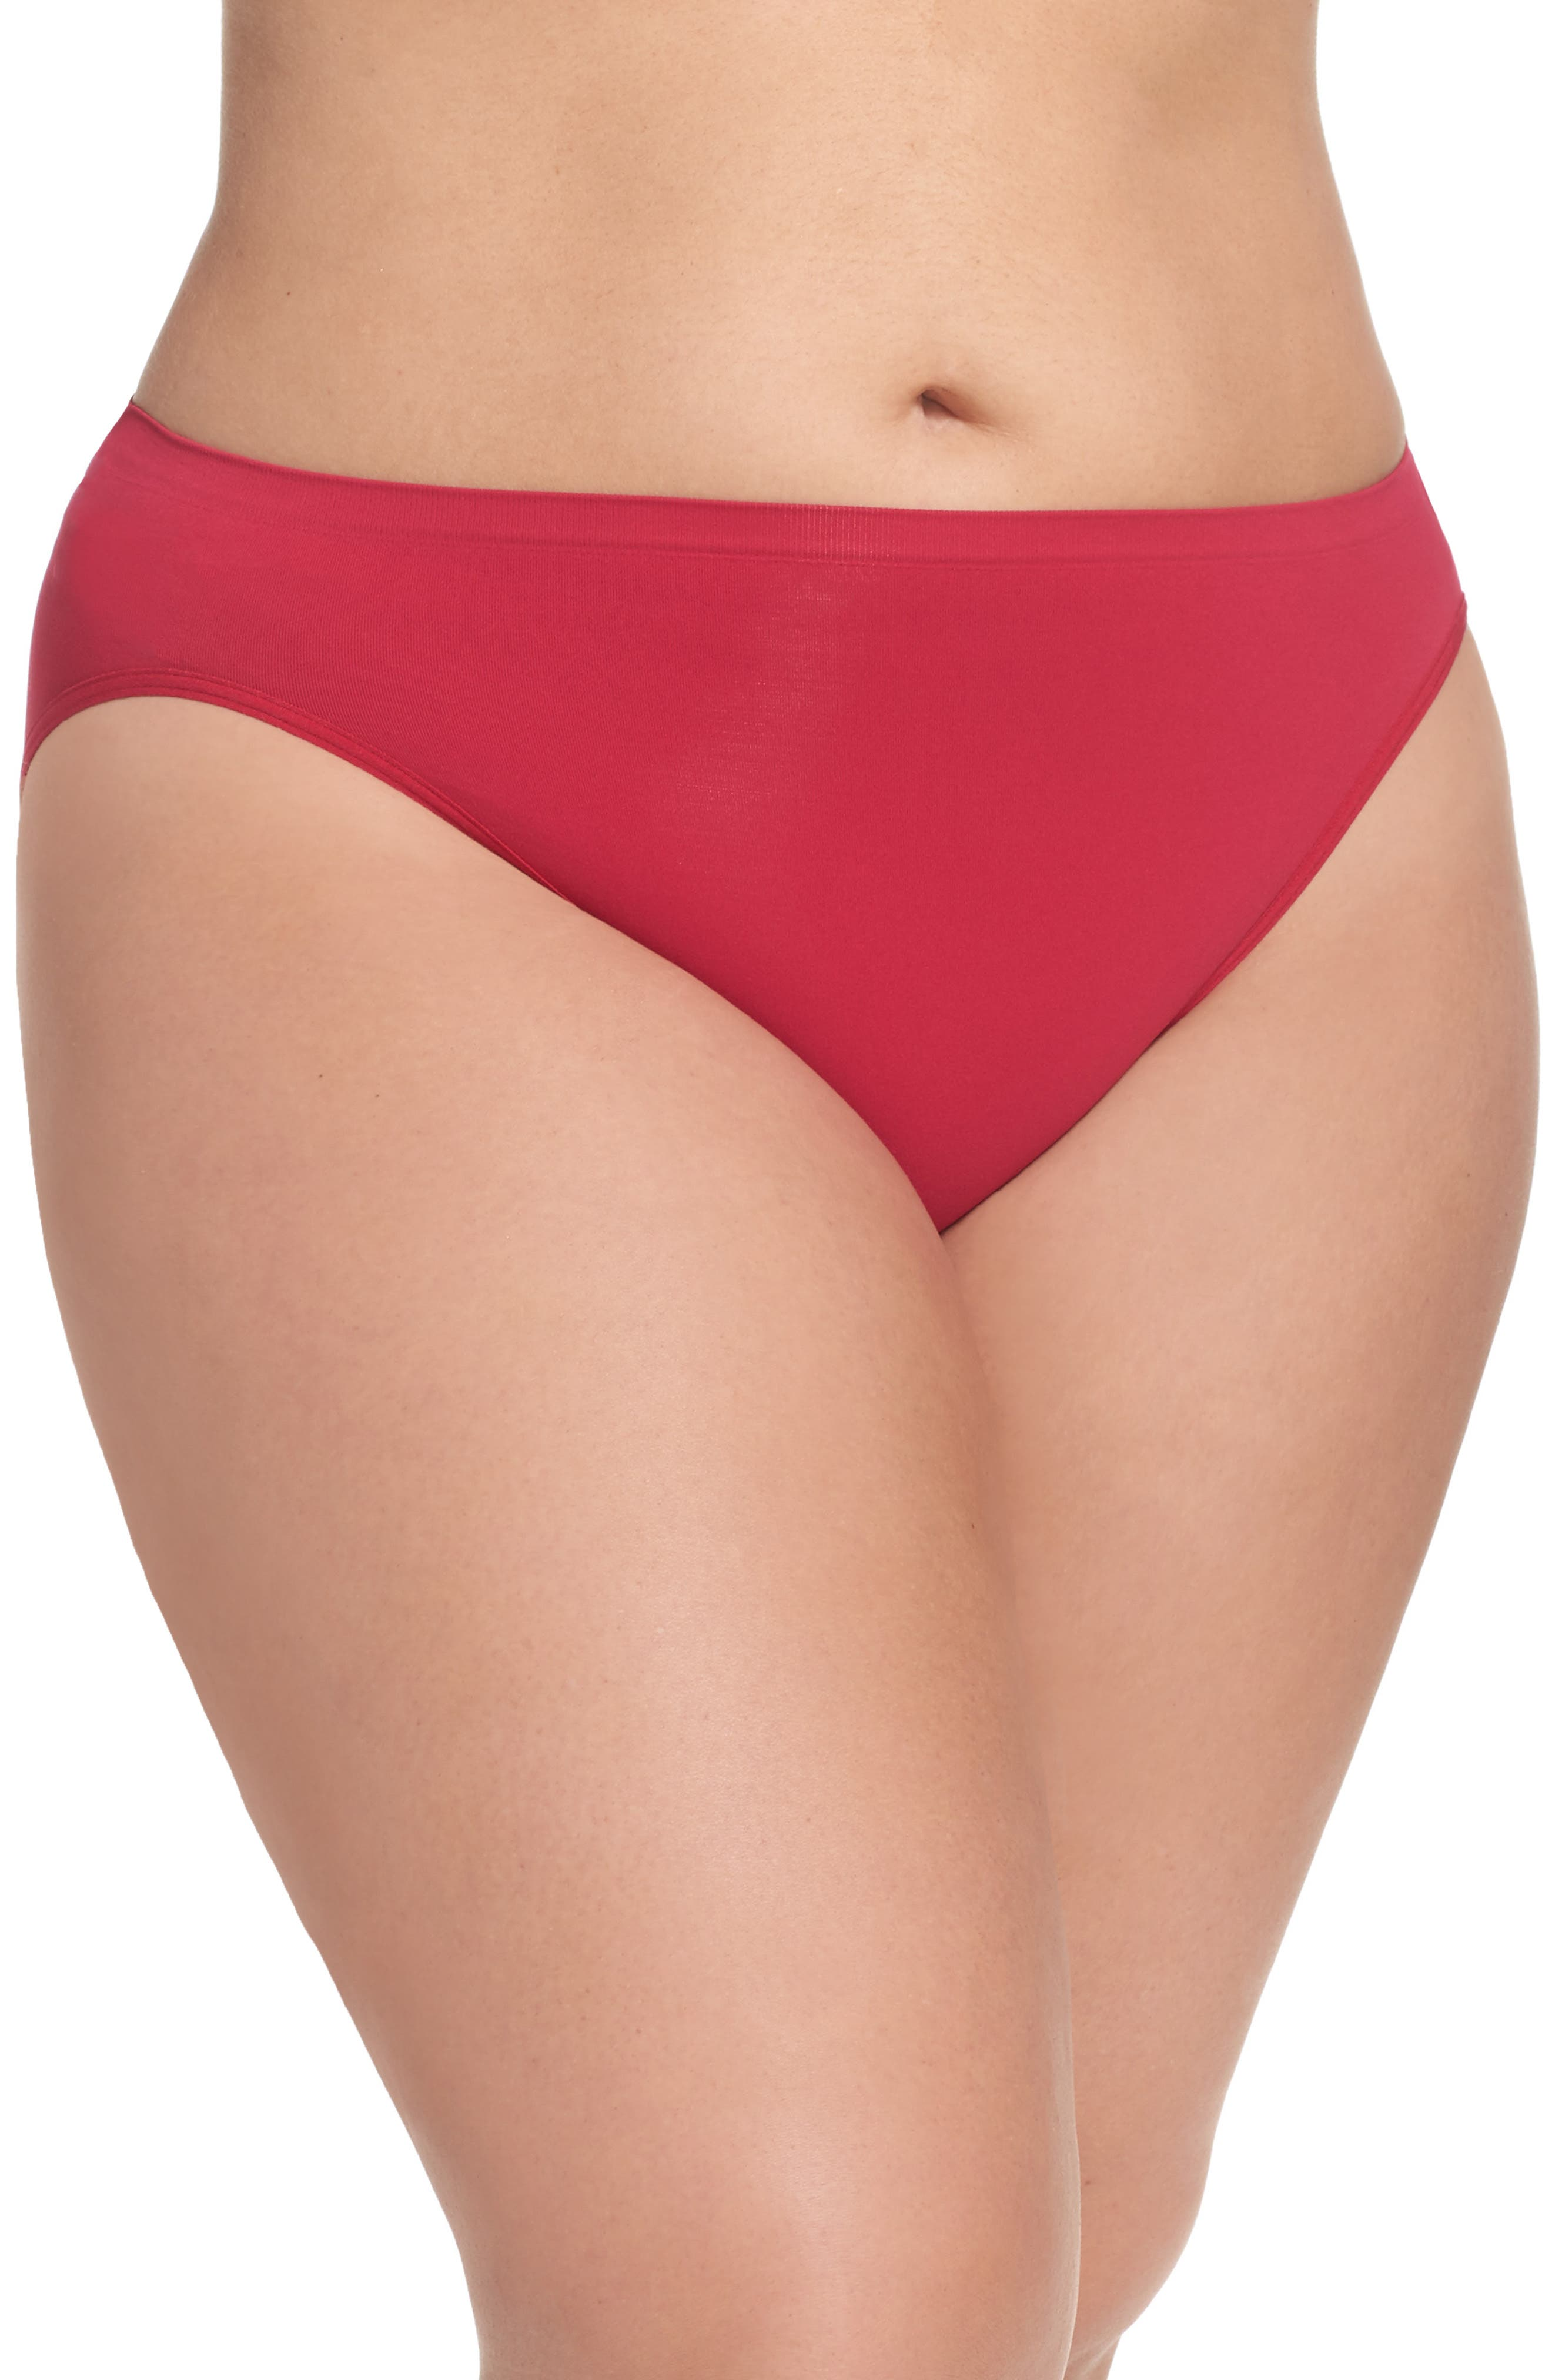 Nordstrom Lingerie Seamless High Cut Briefs (Plus Size) (4 for $34)